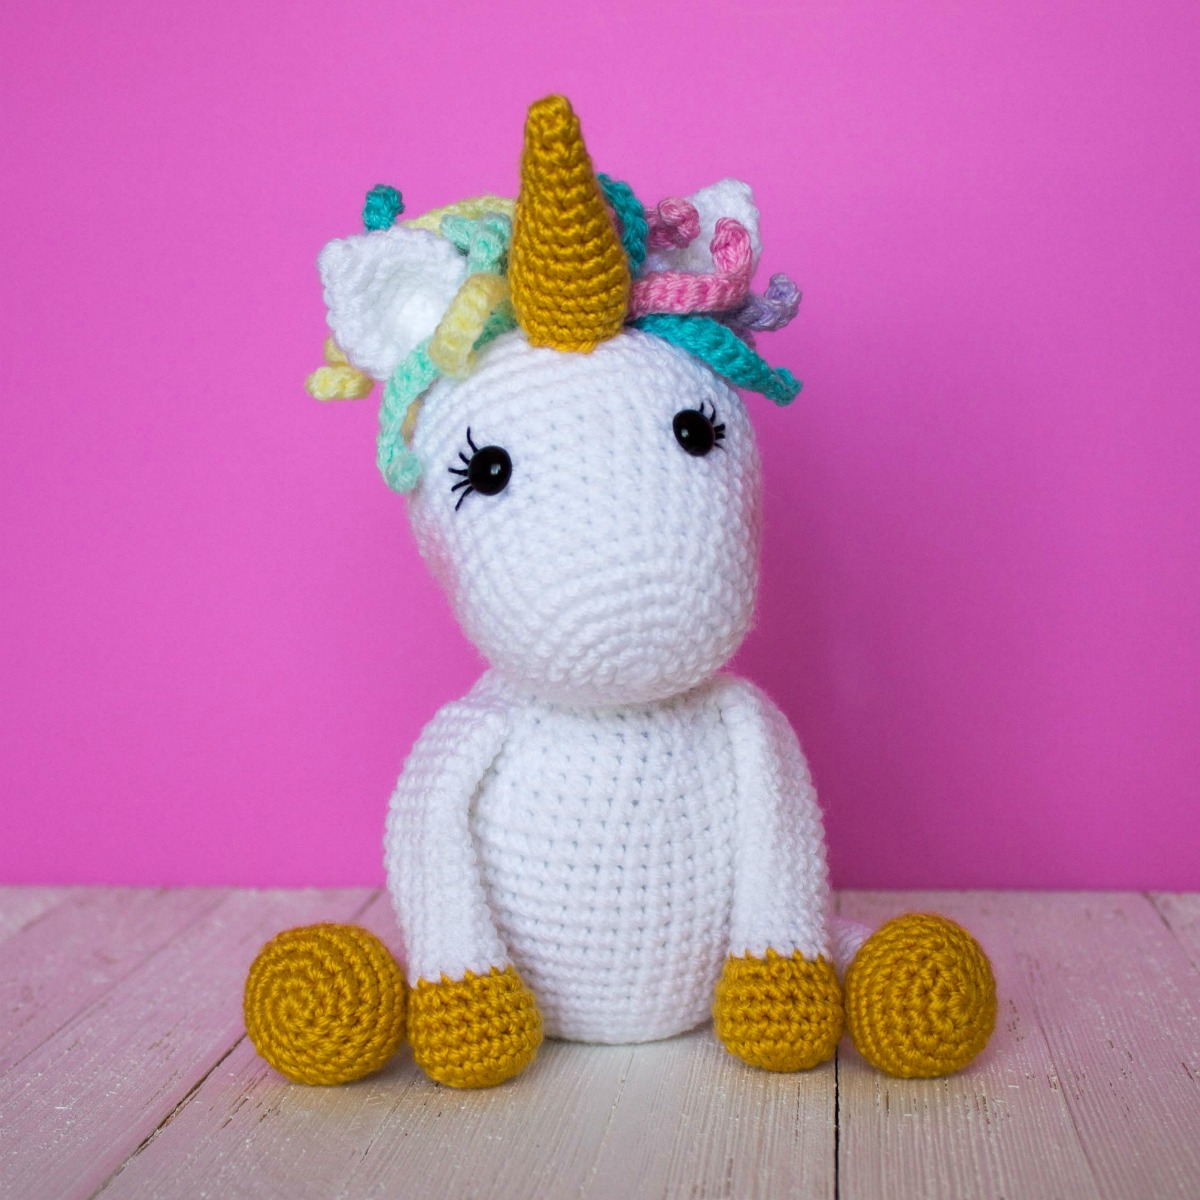 The%2BFriendly%2BUnicorn%2Bwithout%2Bflowes